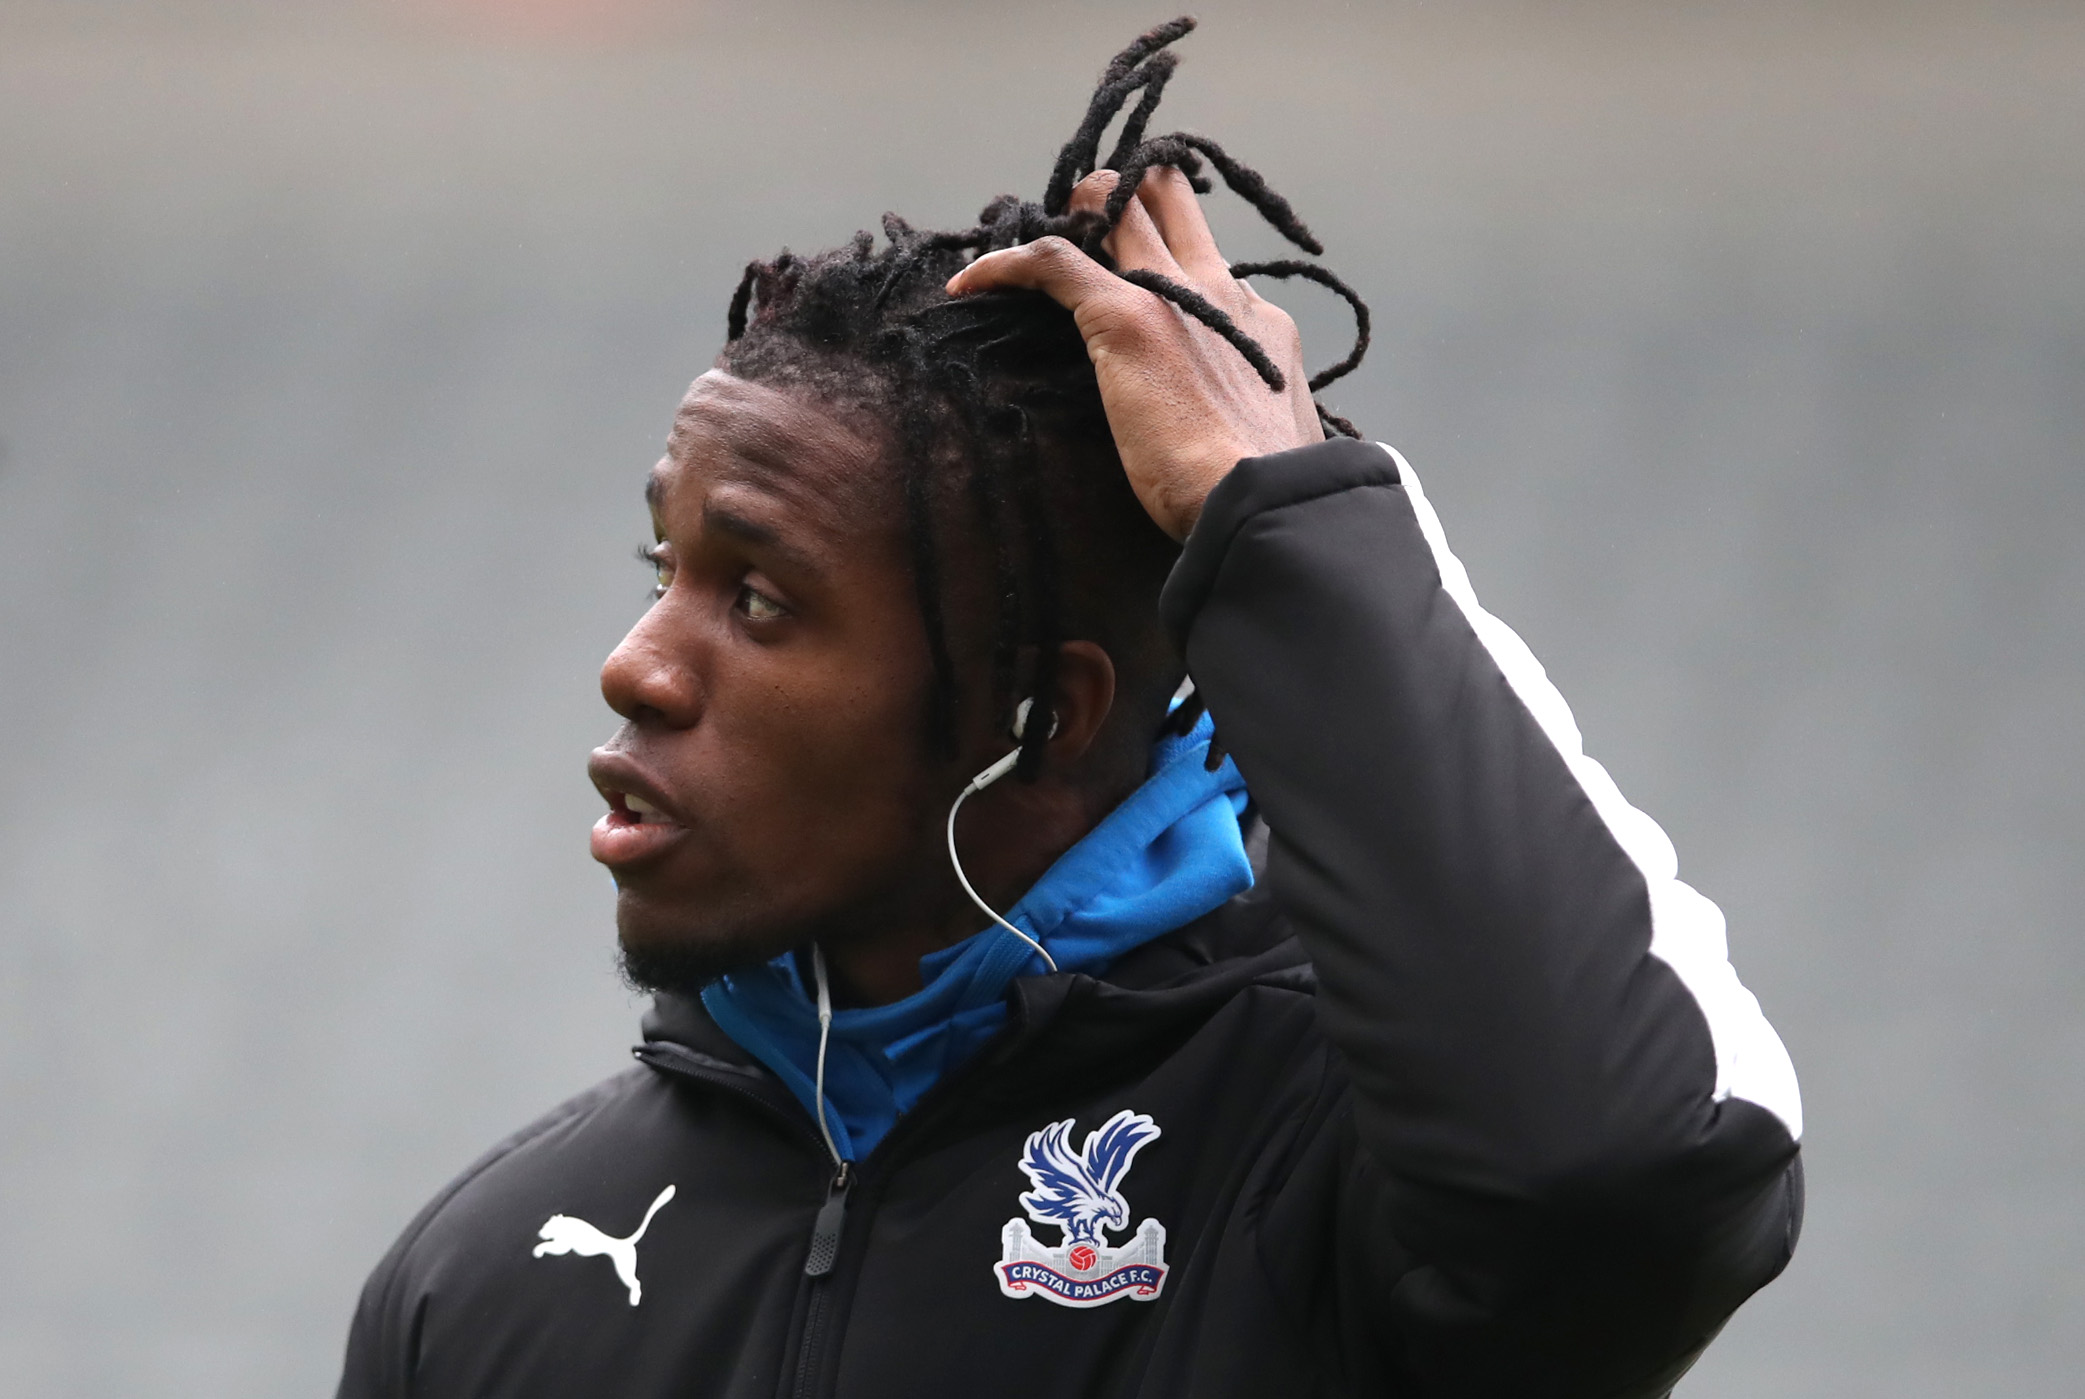 Will Wilfried Zaha finally get his dream move to a big club?(Photo by Ian MacNicol/Getty Images)